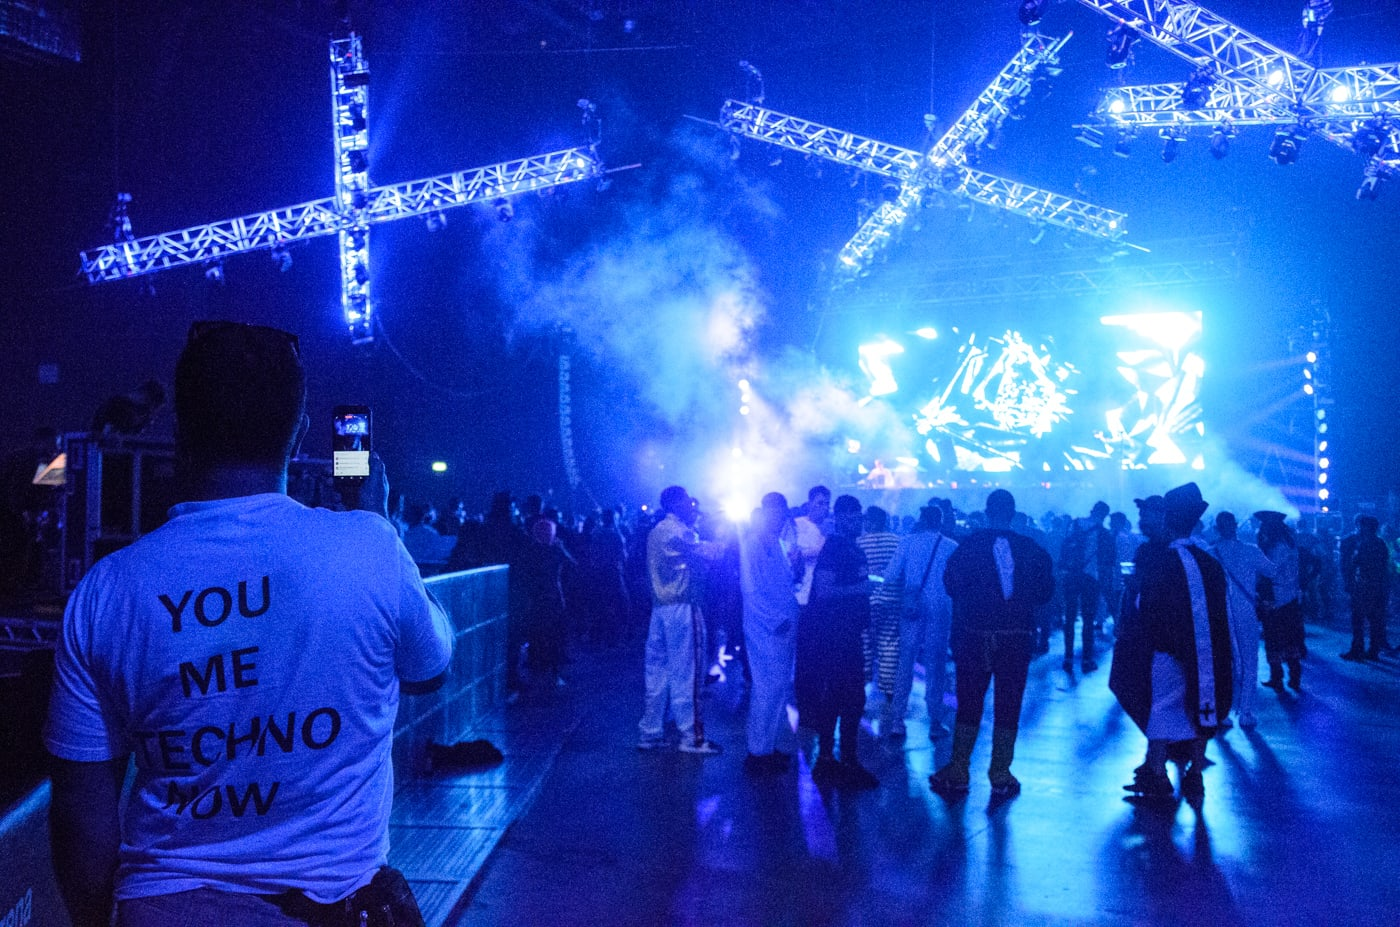 winterparty-at-3arena-dublin-30-10-2016-by-sean-smyth-5-of-53